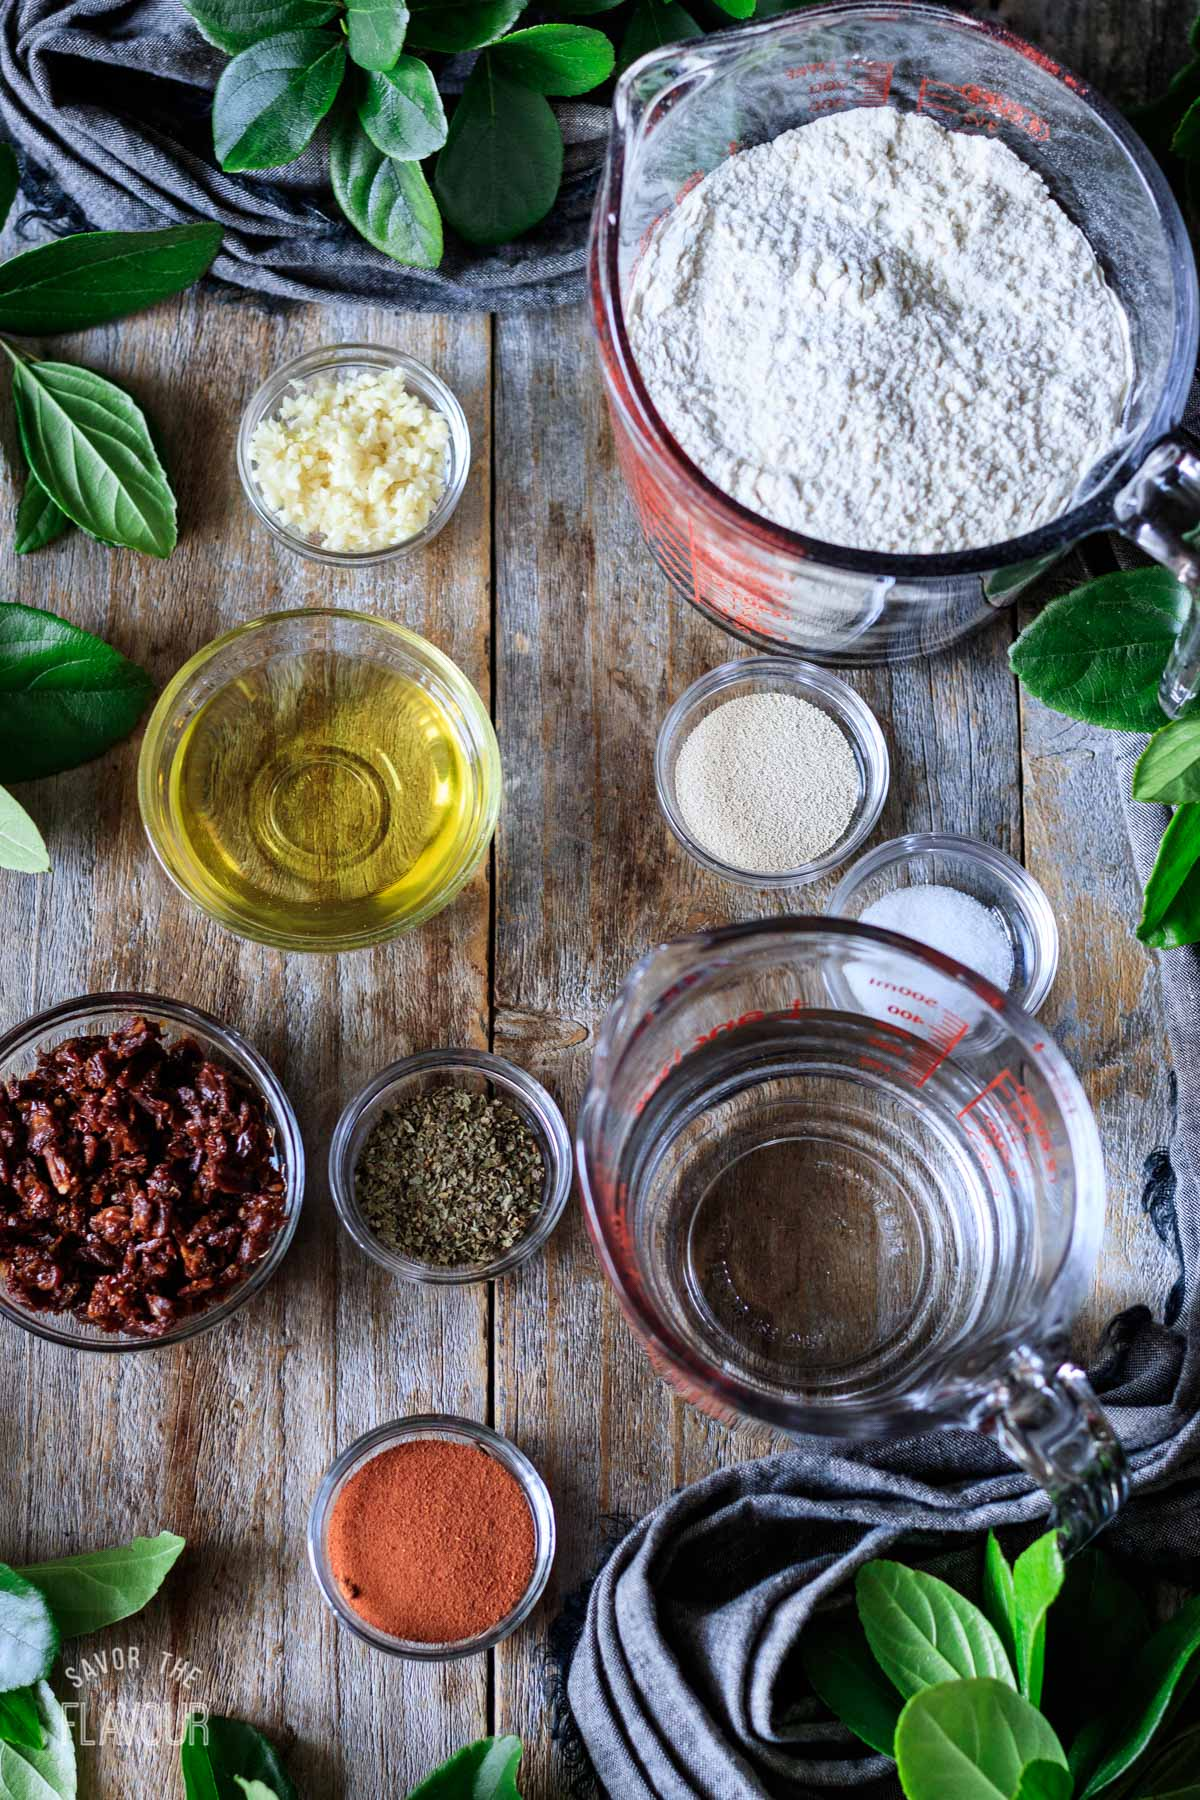 glass bowls of ingredients for tomato basil bread